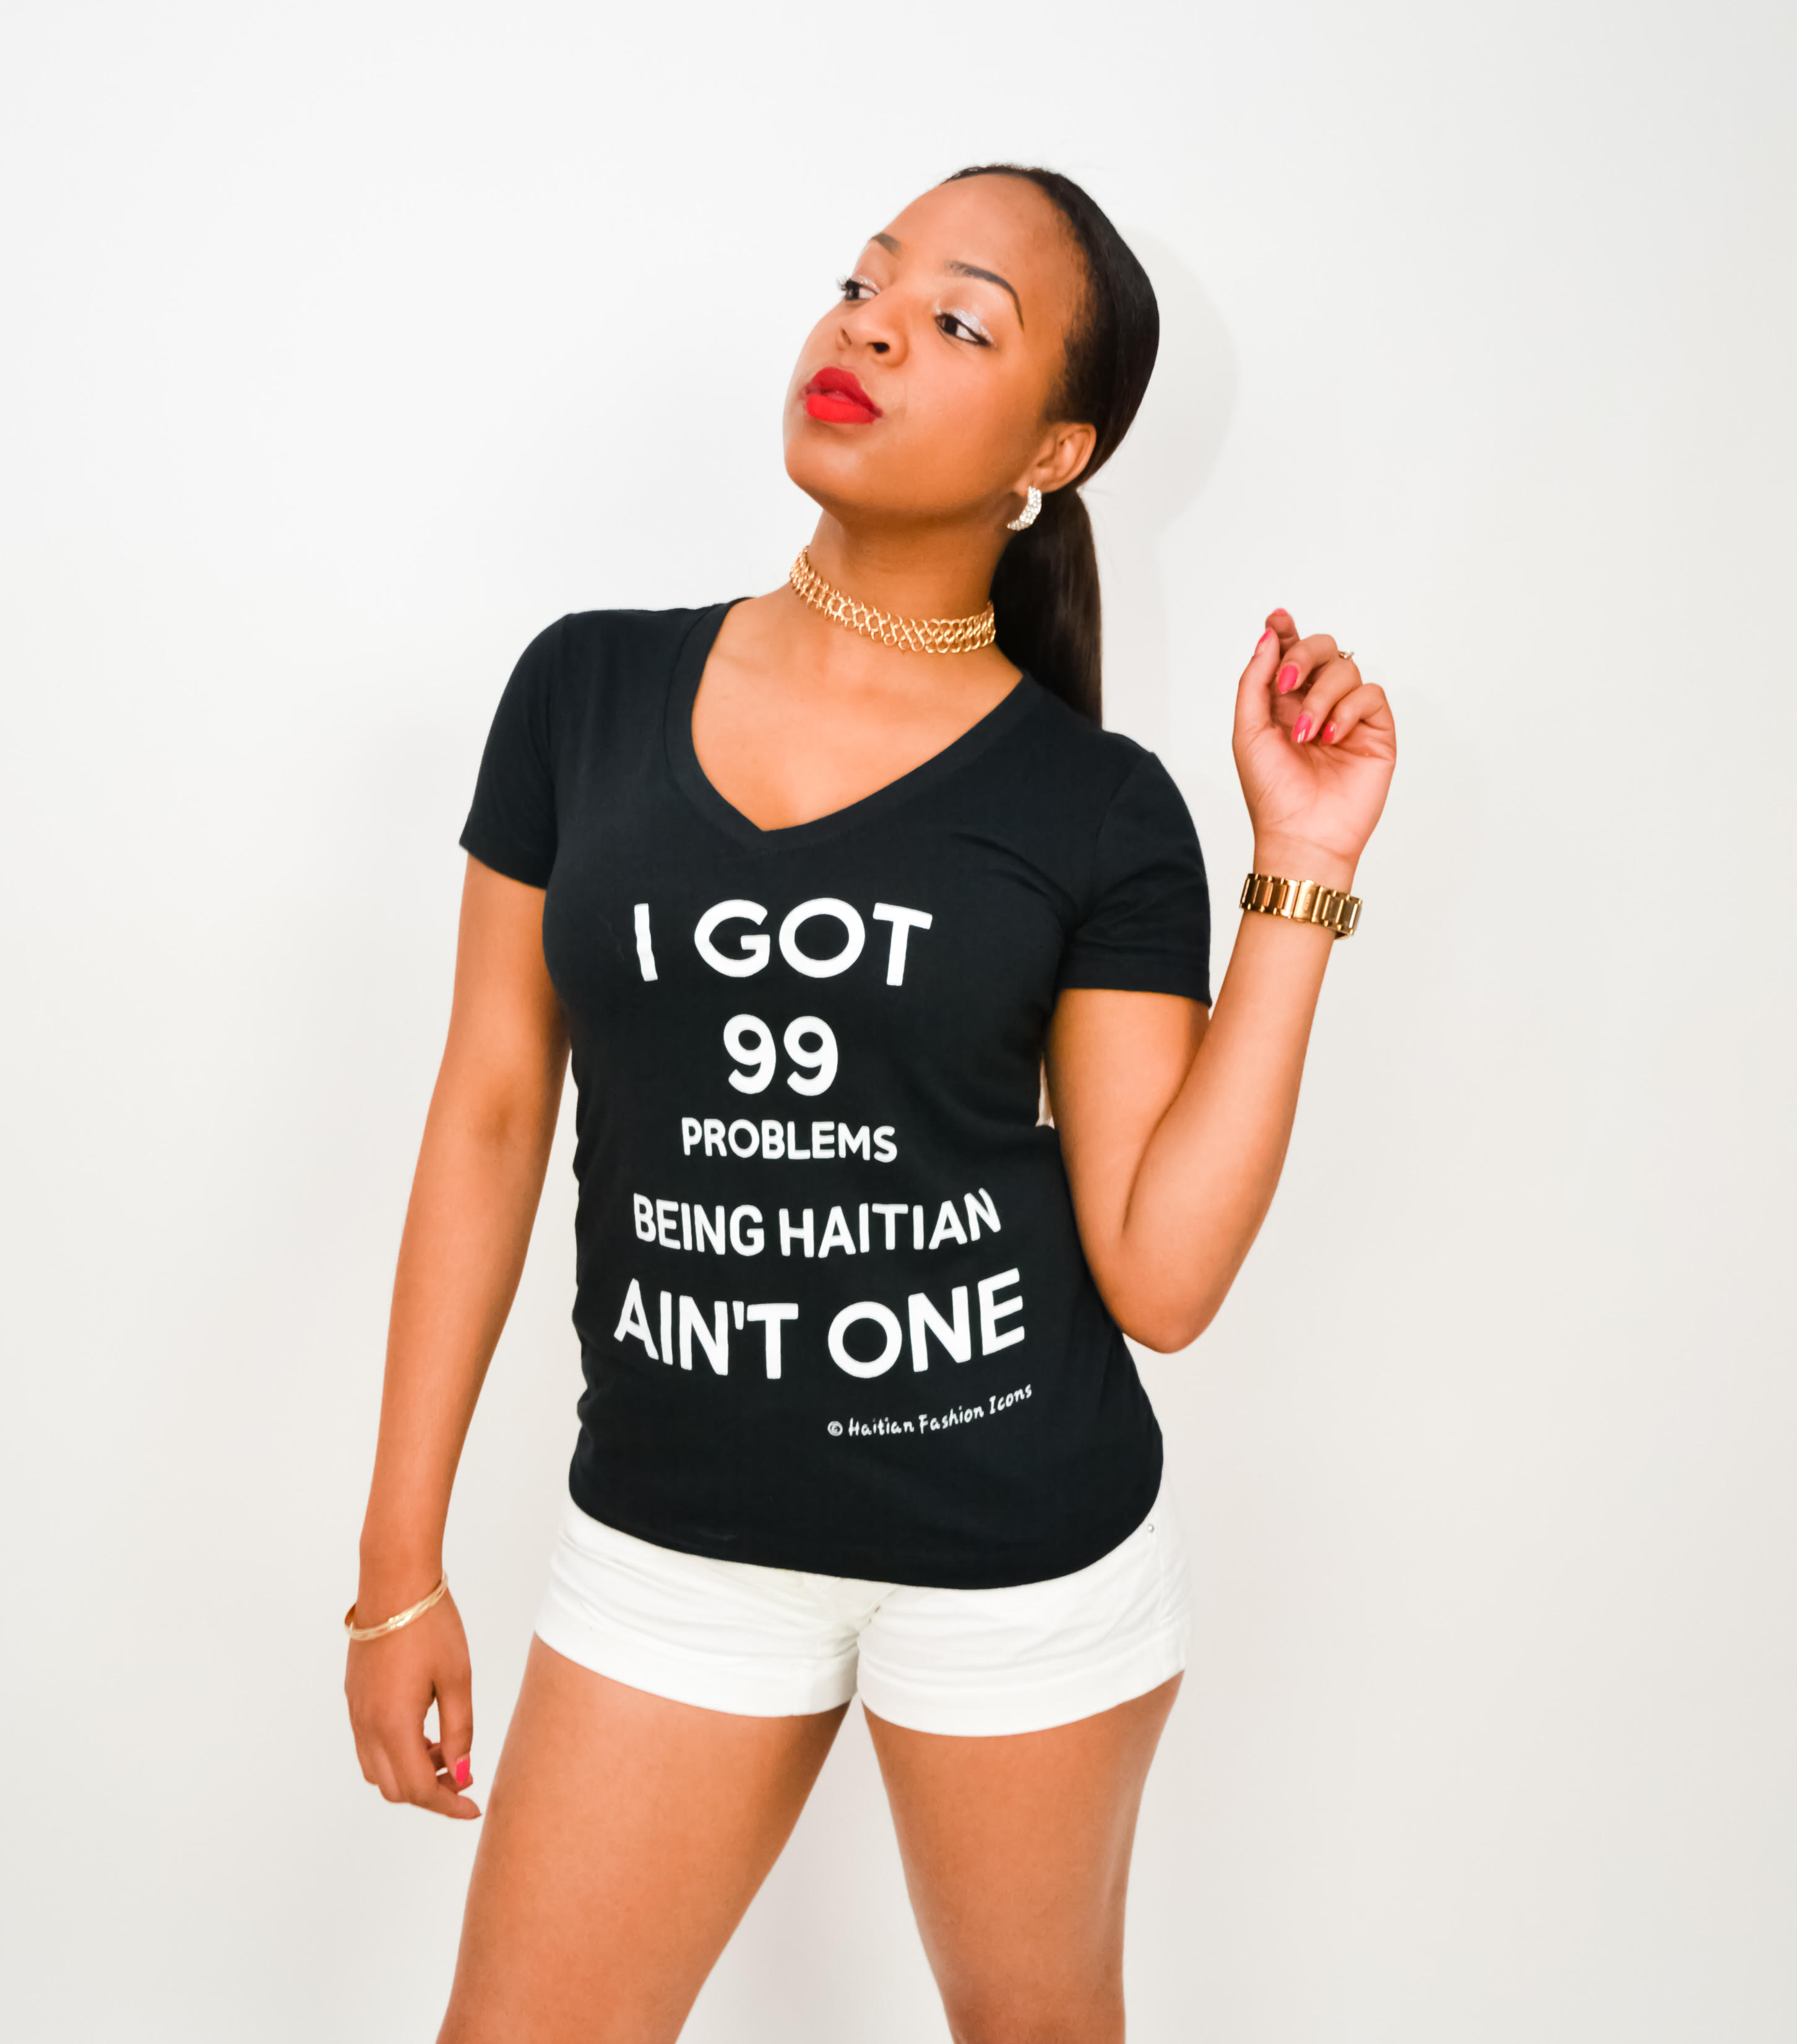 V-NECK T-SHIRT: I GOT 99 PROBLEMS BEING HAITIAN AIN'T ONE